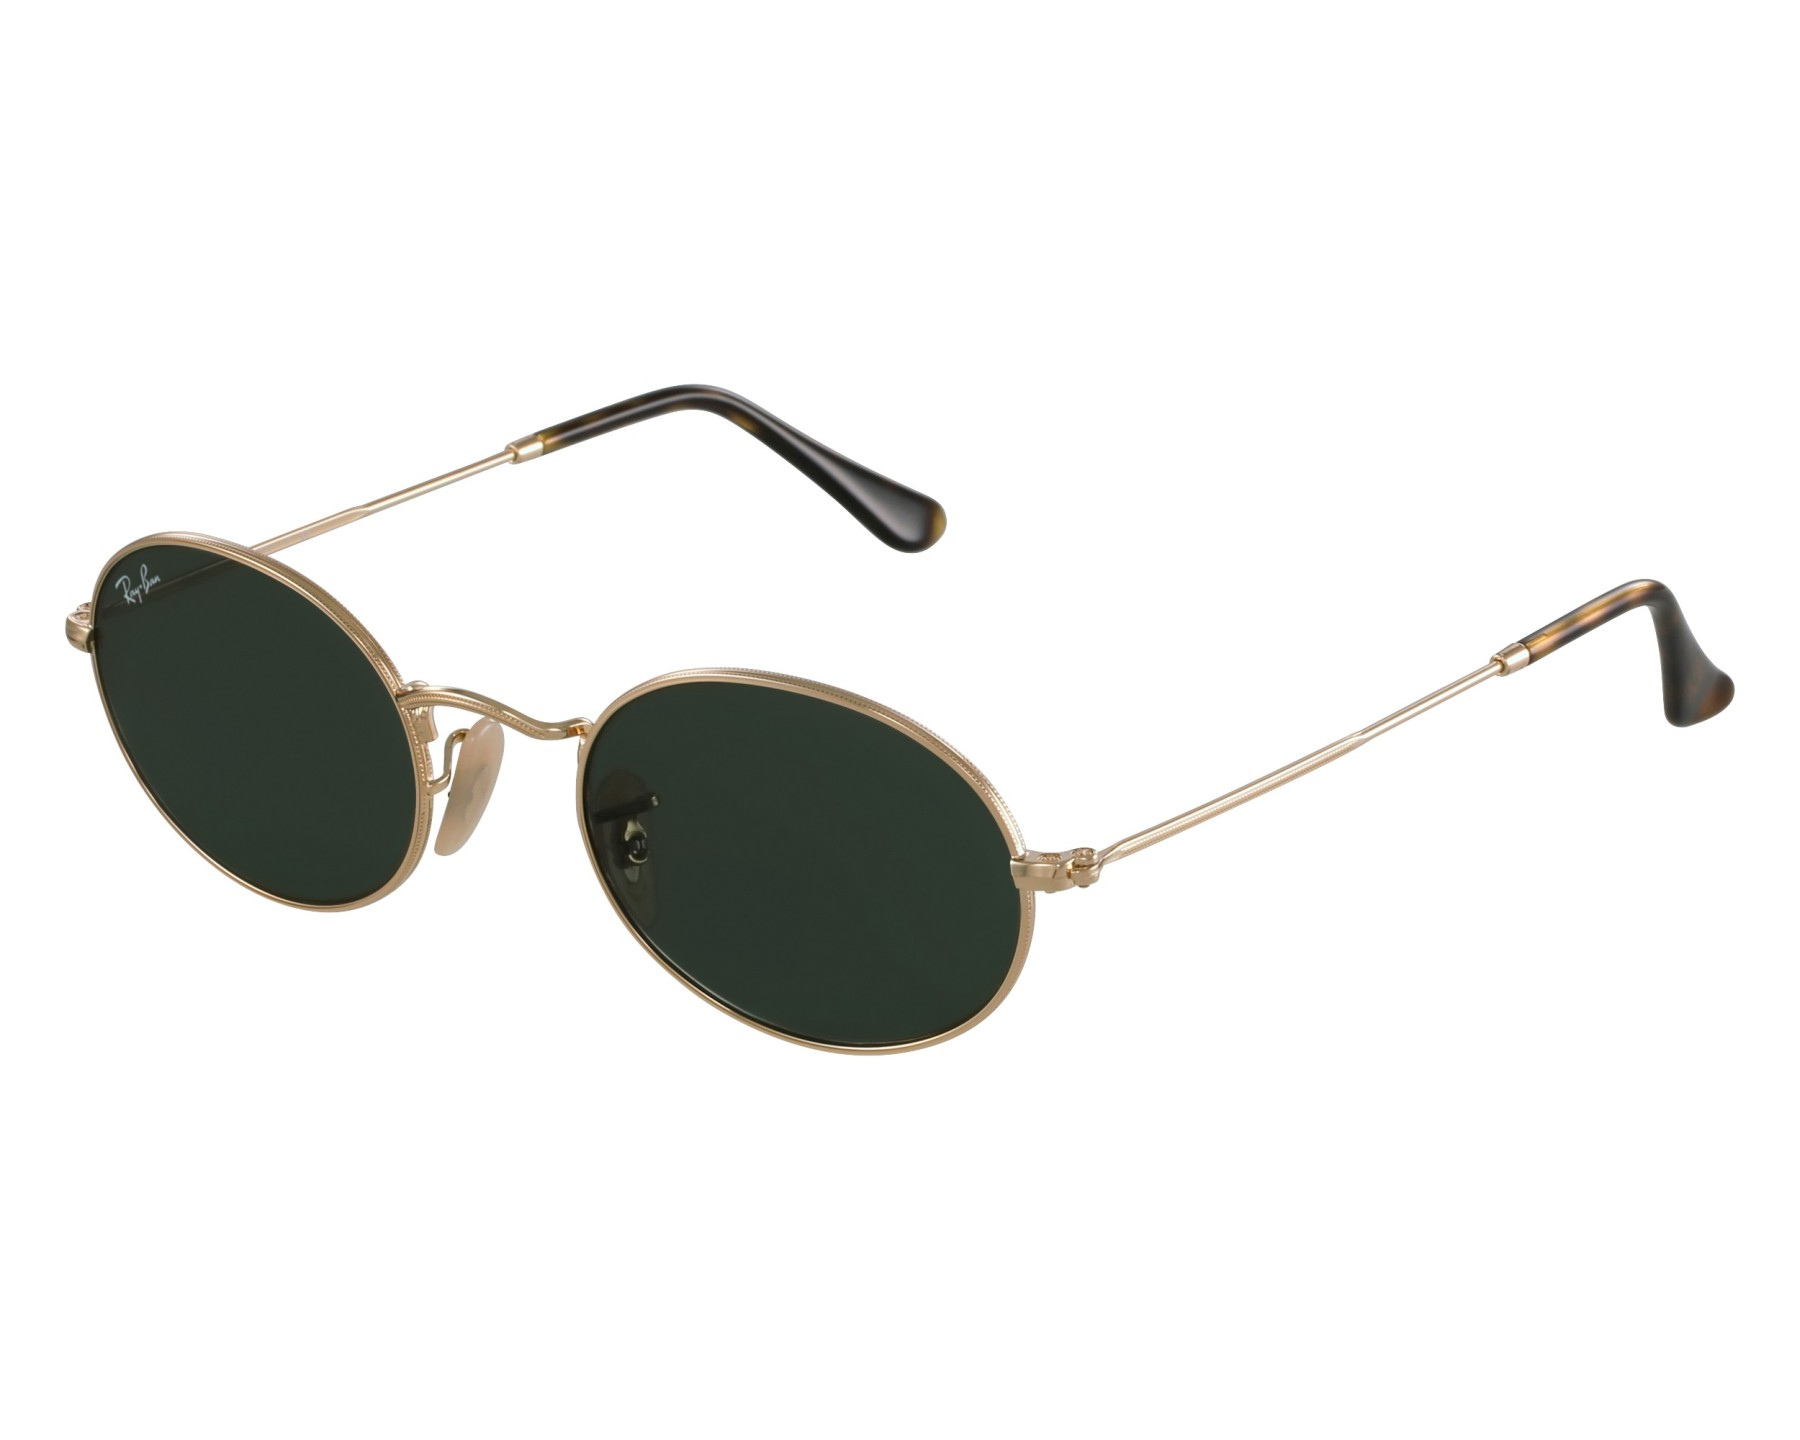 5d42fd058a6 Sunglasses Ray-Ban RB-3547-N 001 48-21 Gold front view